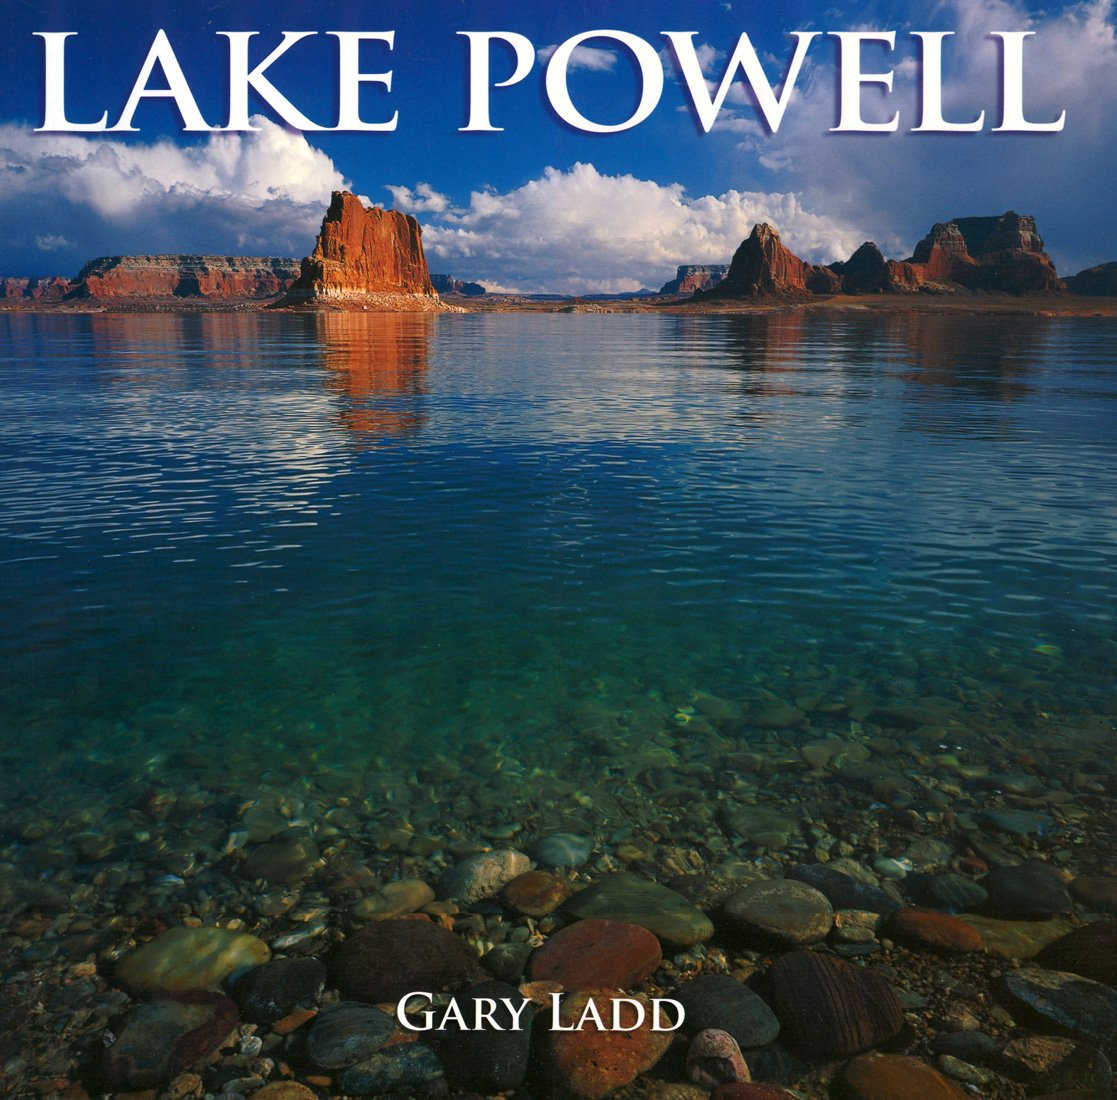 Lake Powell: A Photographic Essay Of Glen Canyon National Recreation Area (Companion Press Series)